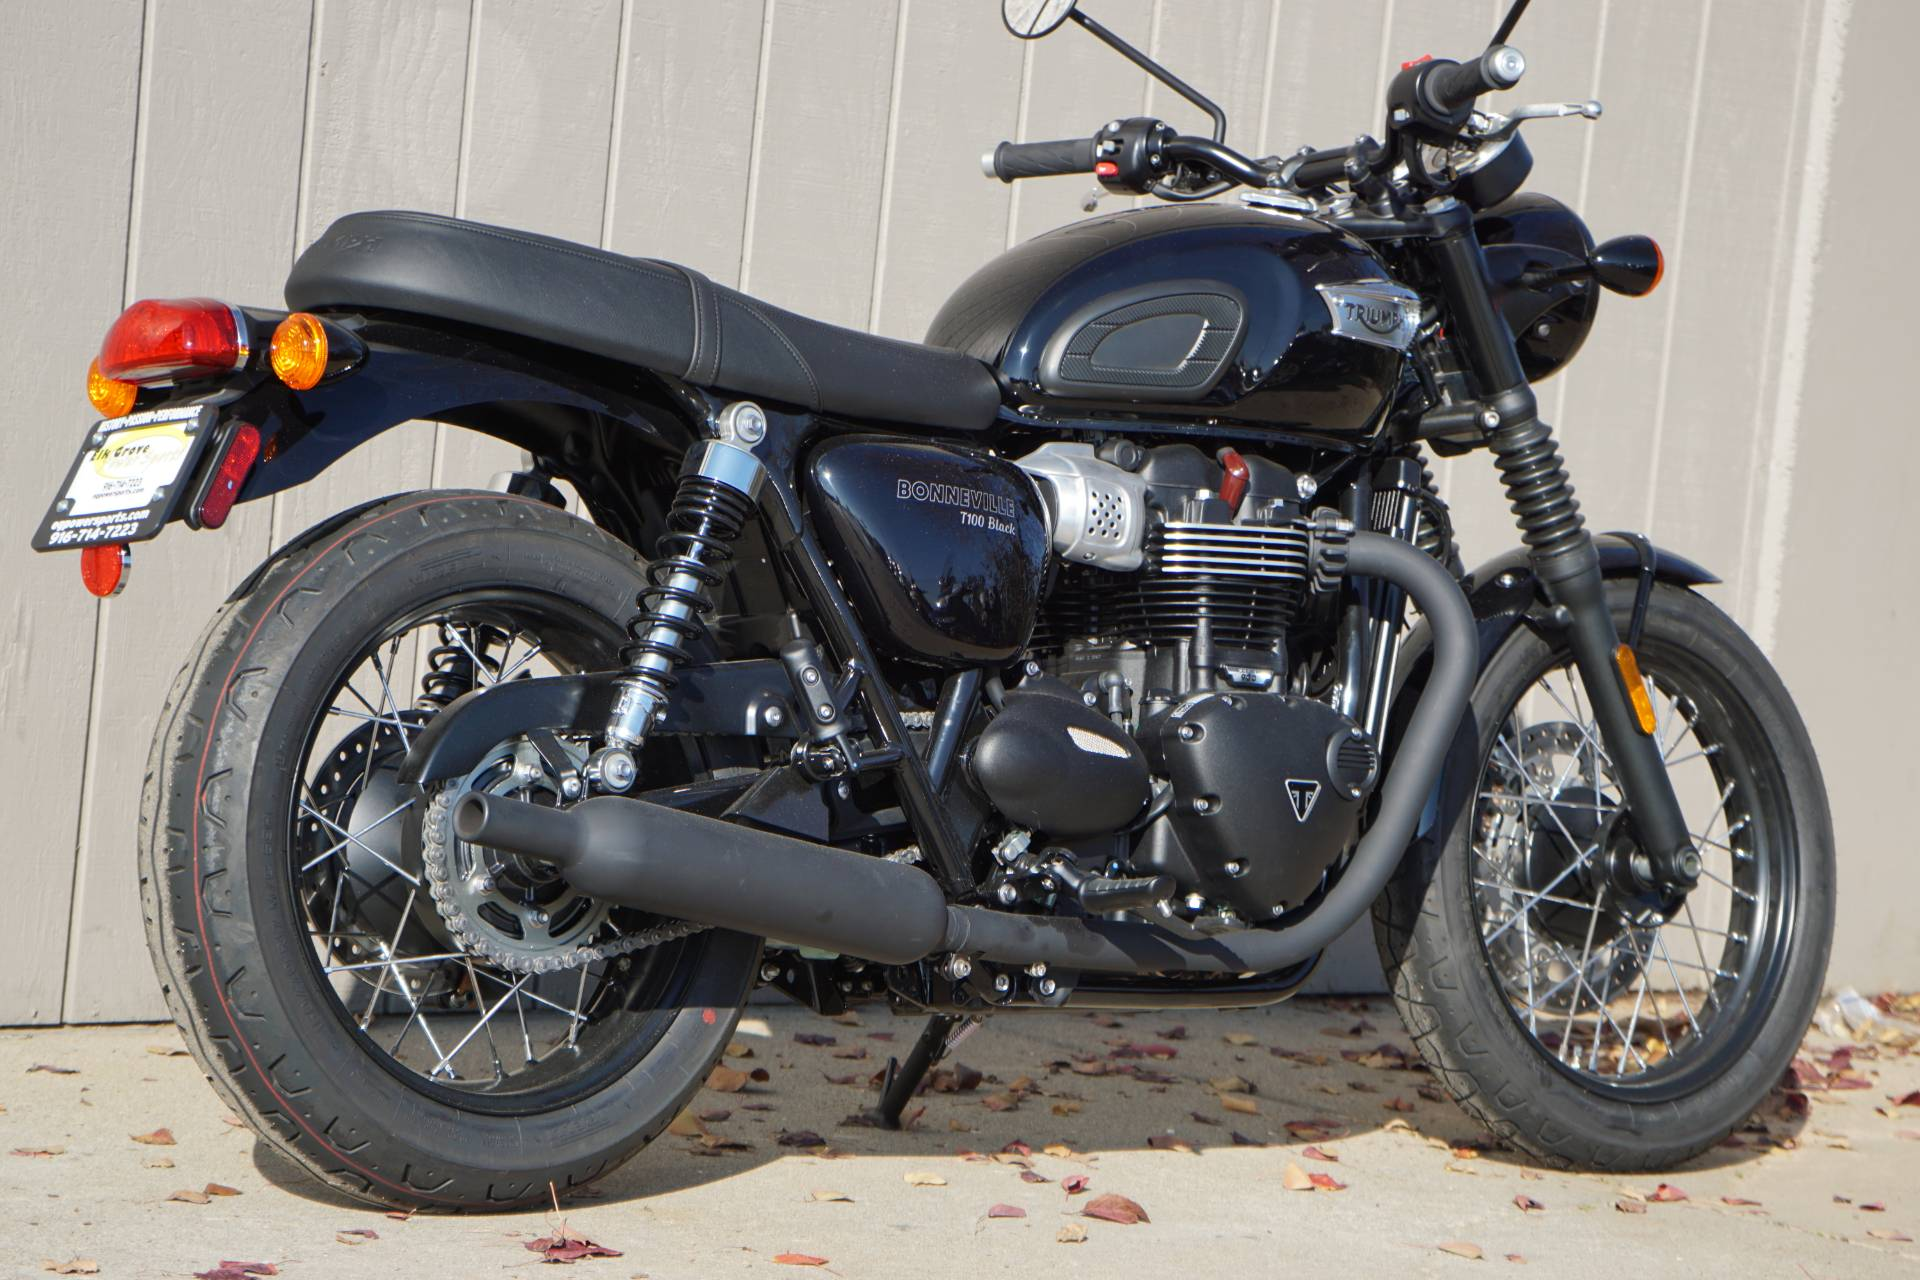 New 2018 Triumph Bonneville T100 Black Motorcycles In Elk Grove Ca